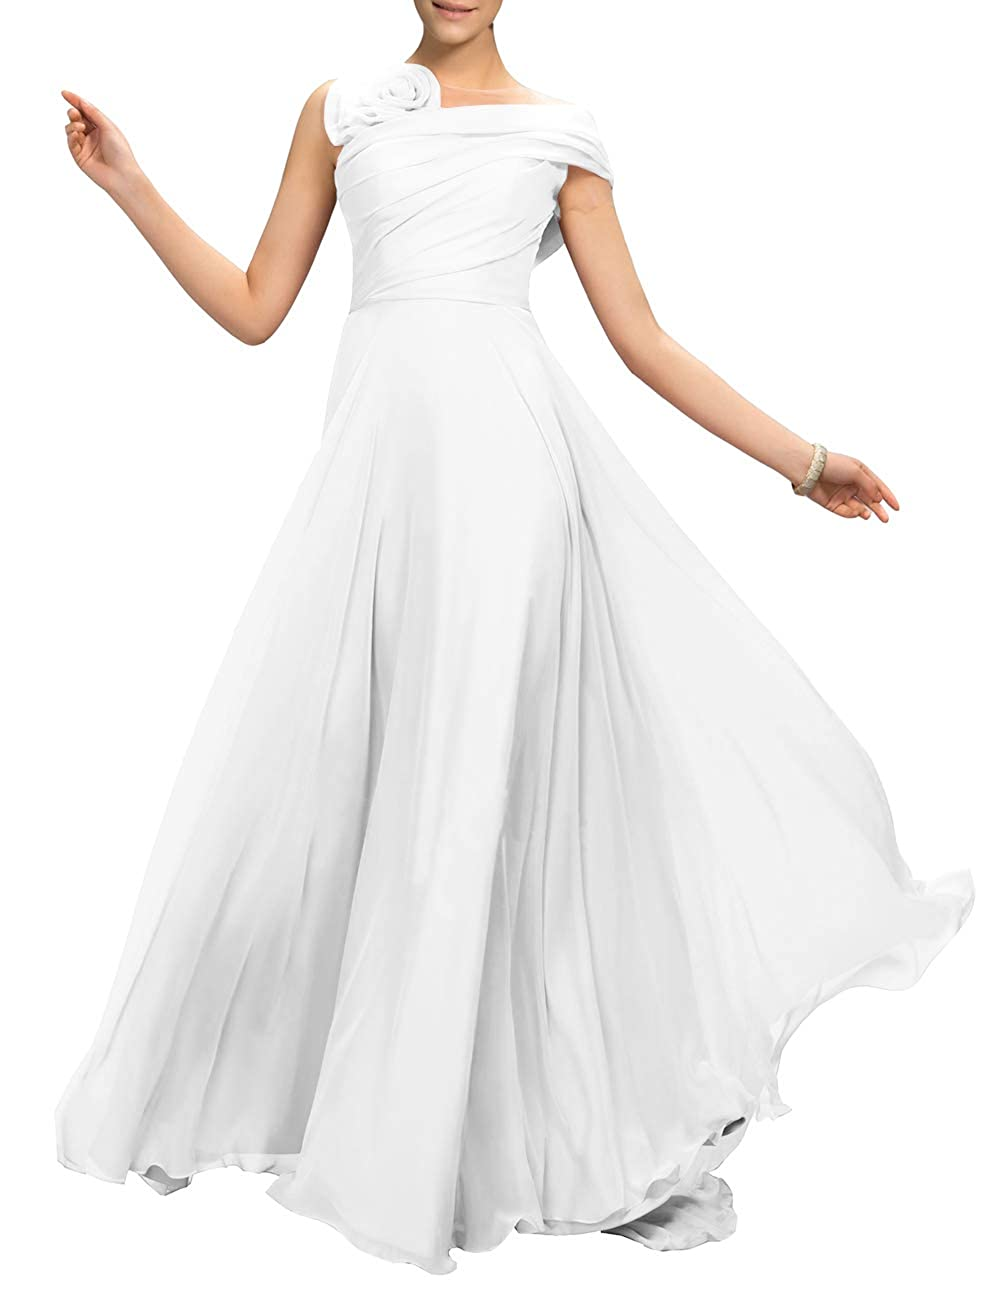 White Uther Flower Long Prom Dress ALine Bridesmaid Dresses Formal Evening Party Gown